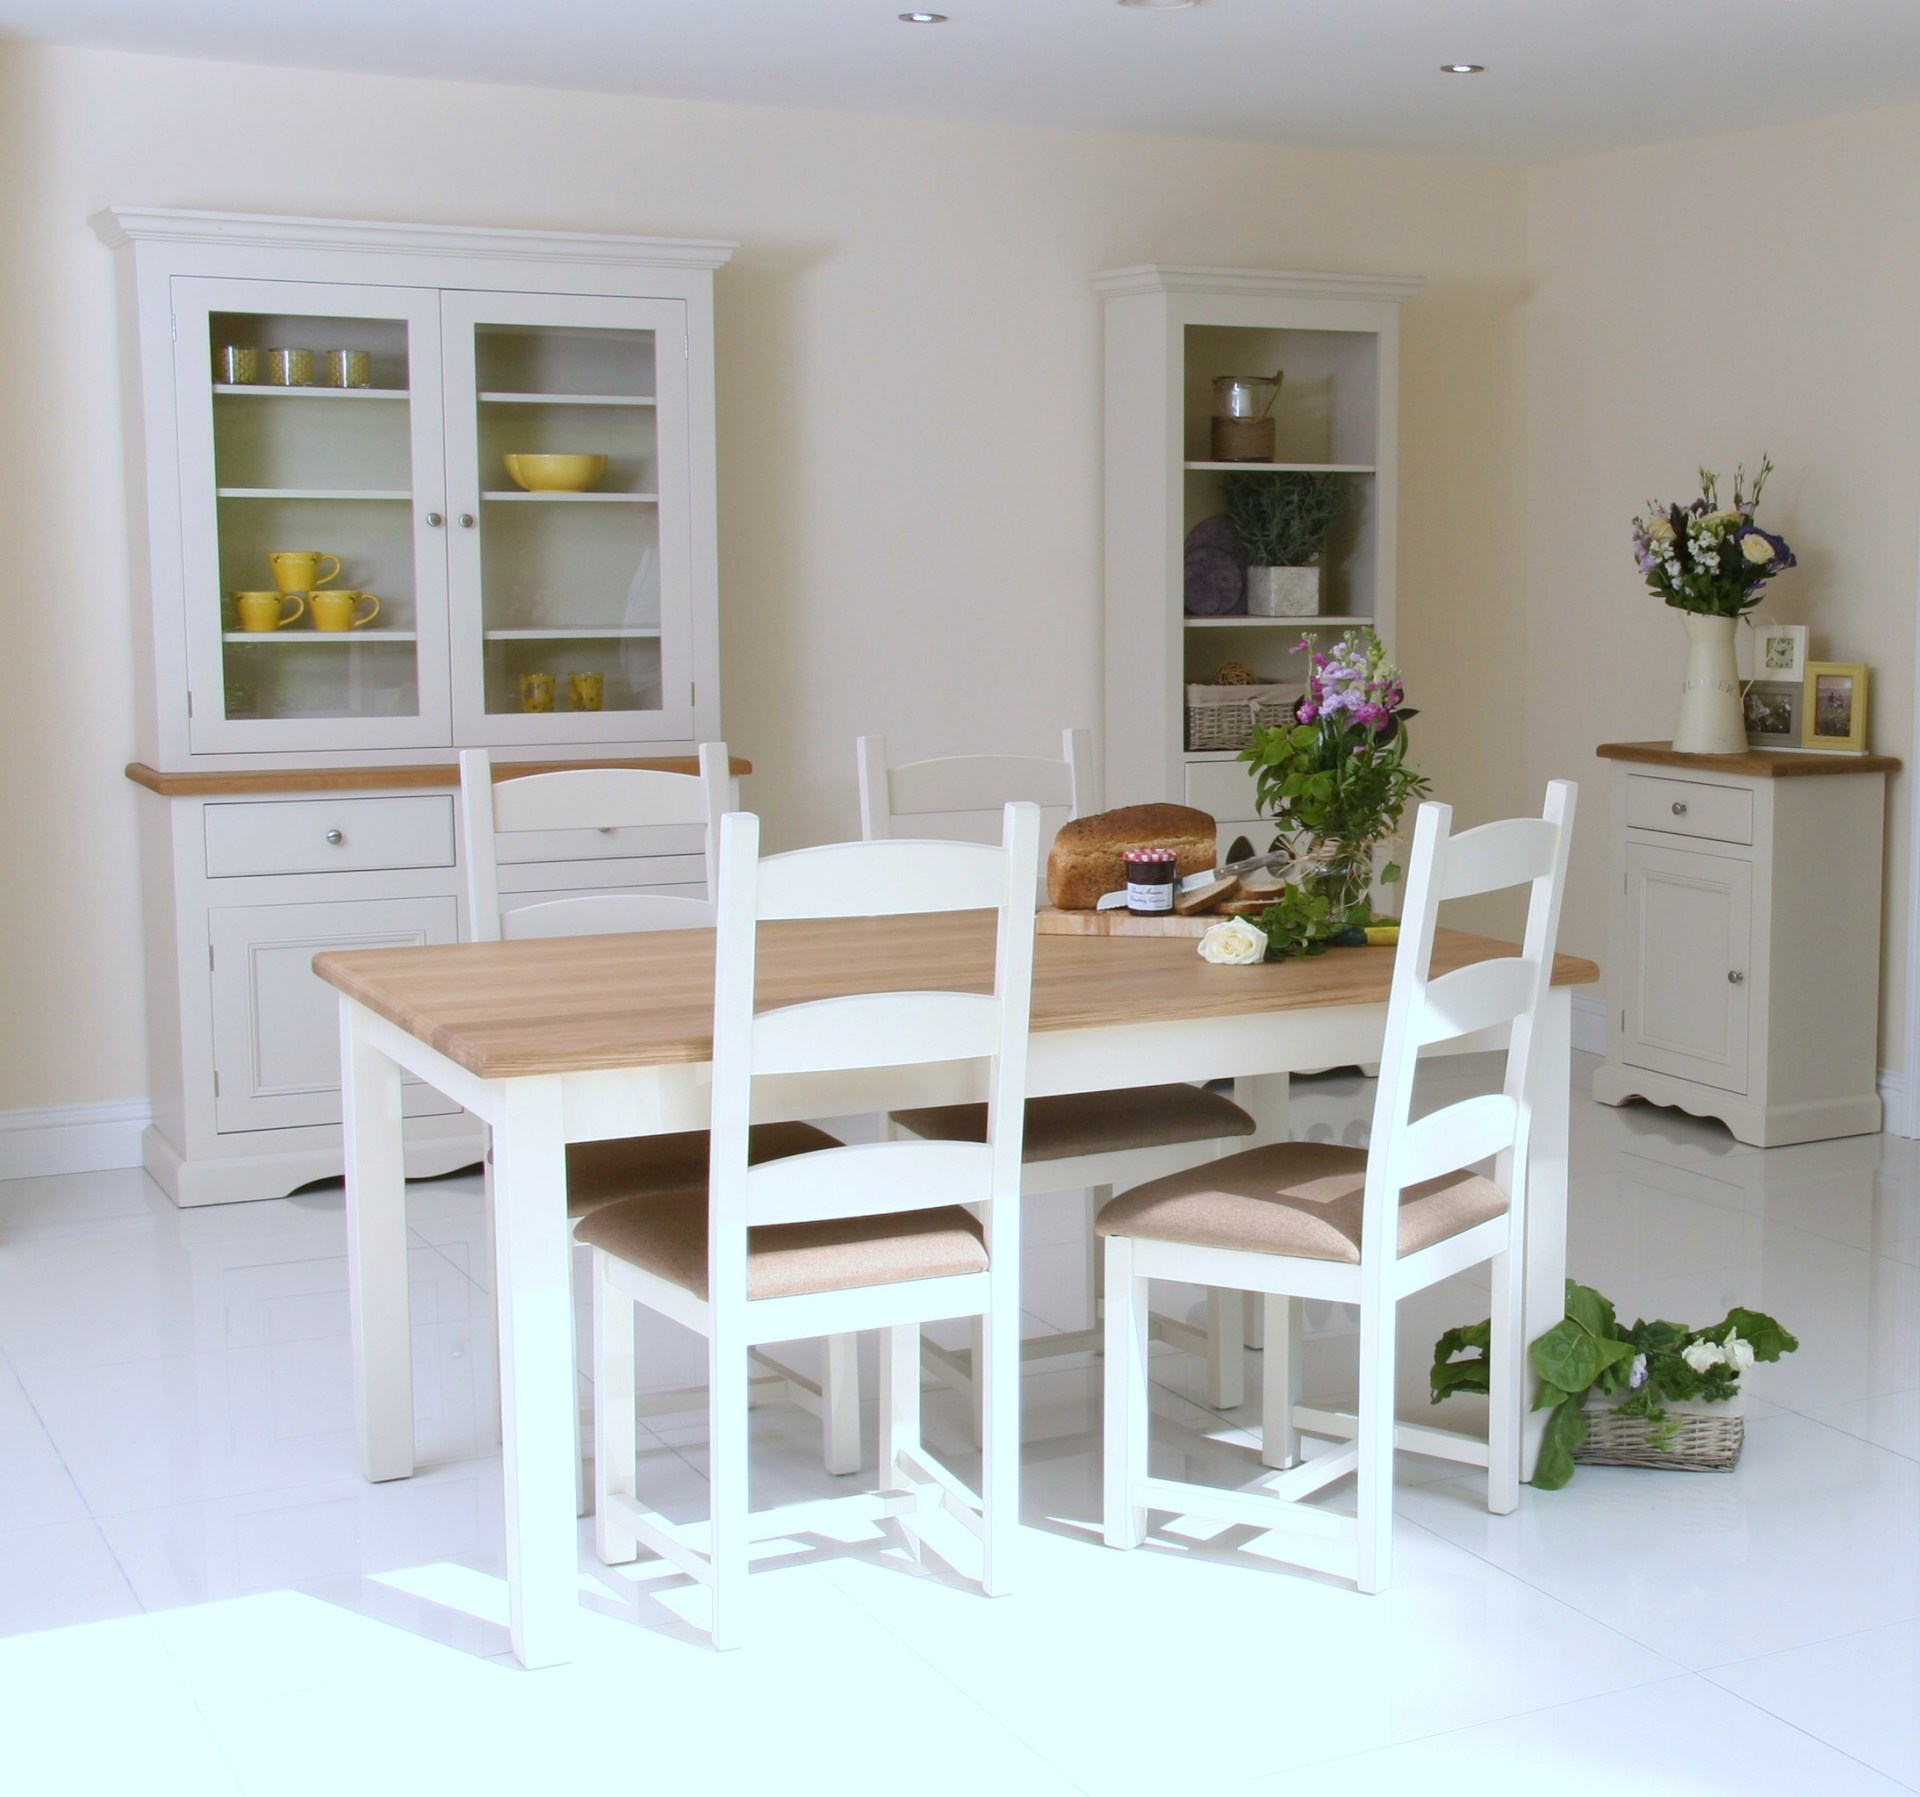 Quality Furniture Crafted in the UK